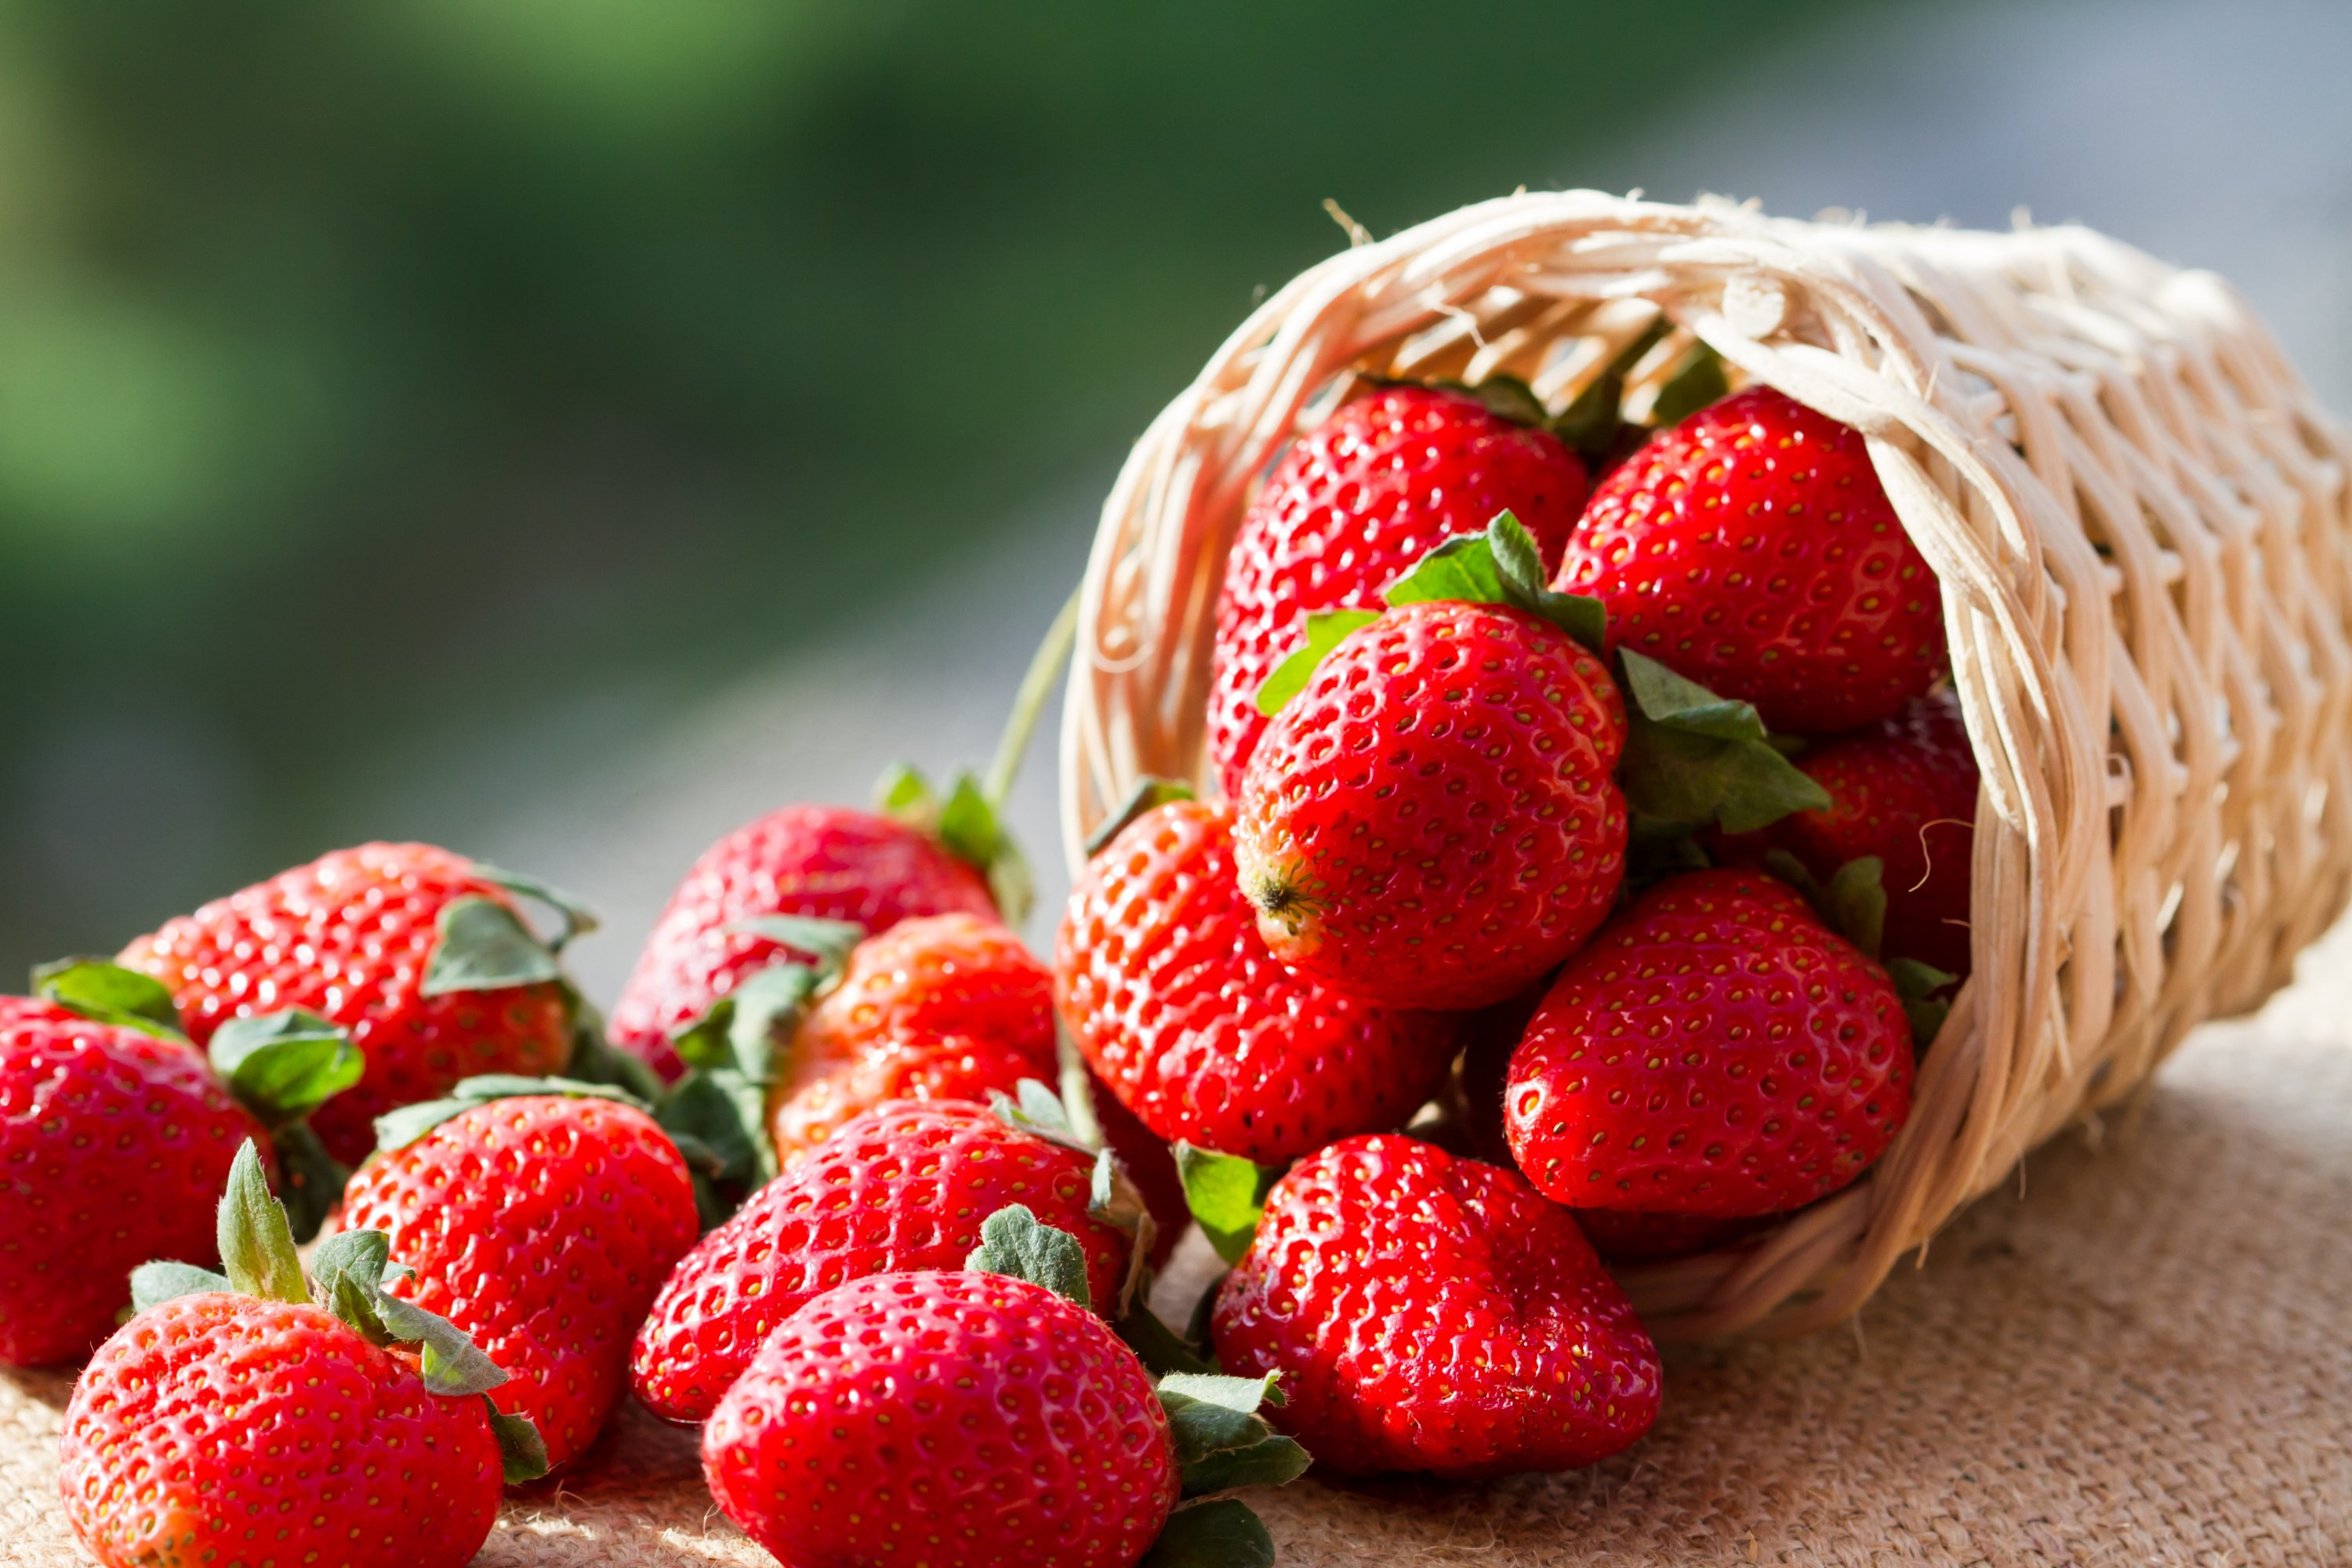 You can manage your sweet tooth by having fruits like strawberries that offer a number of benefits while satisfying the craving for something sweet. (Shutterstock Photo)